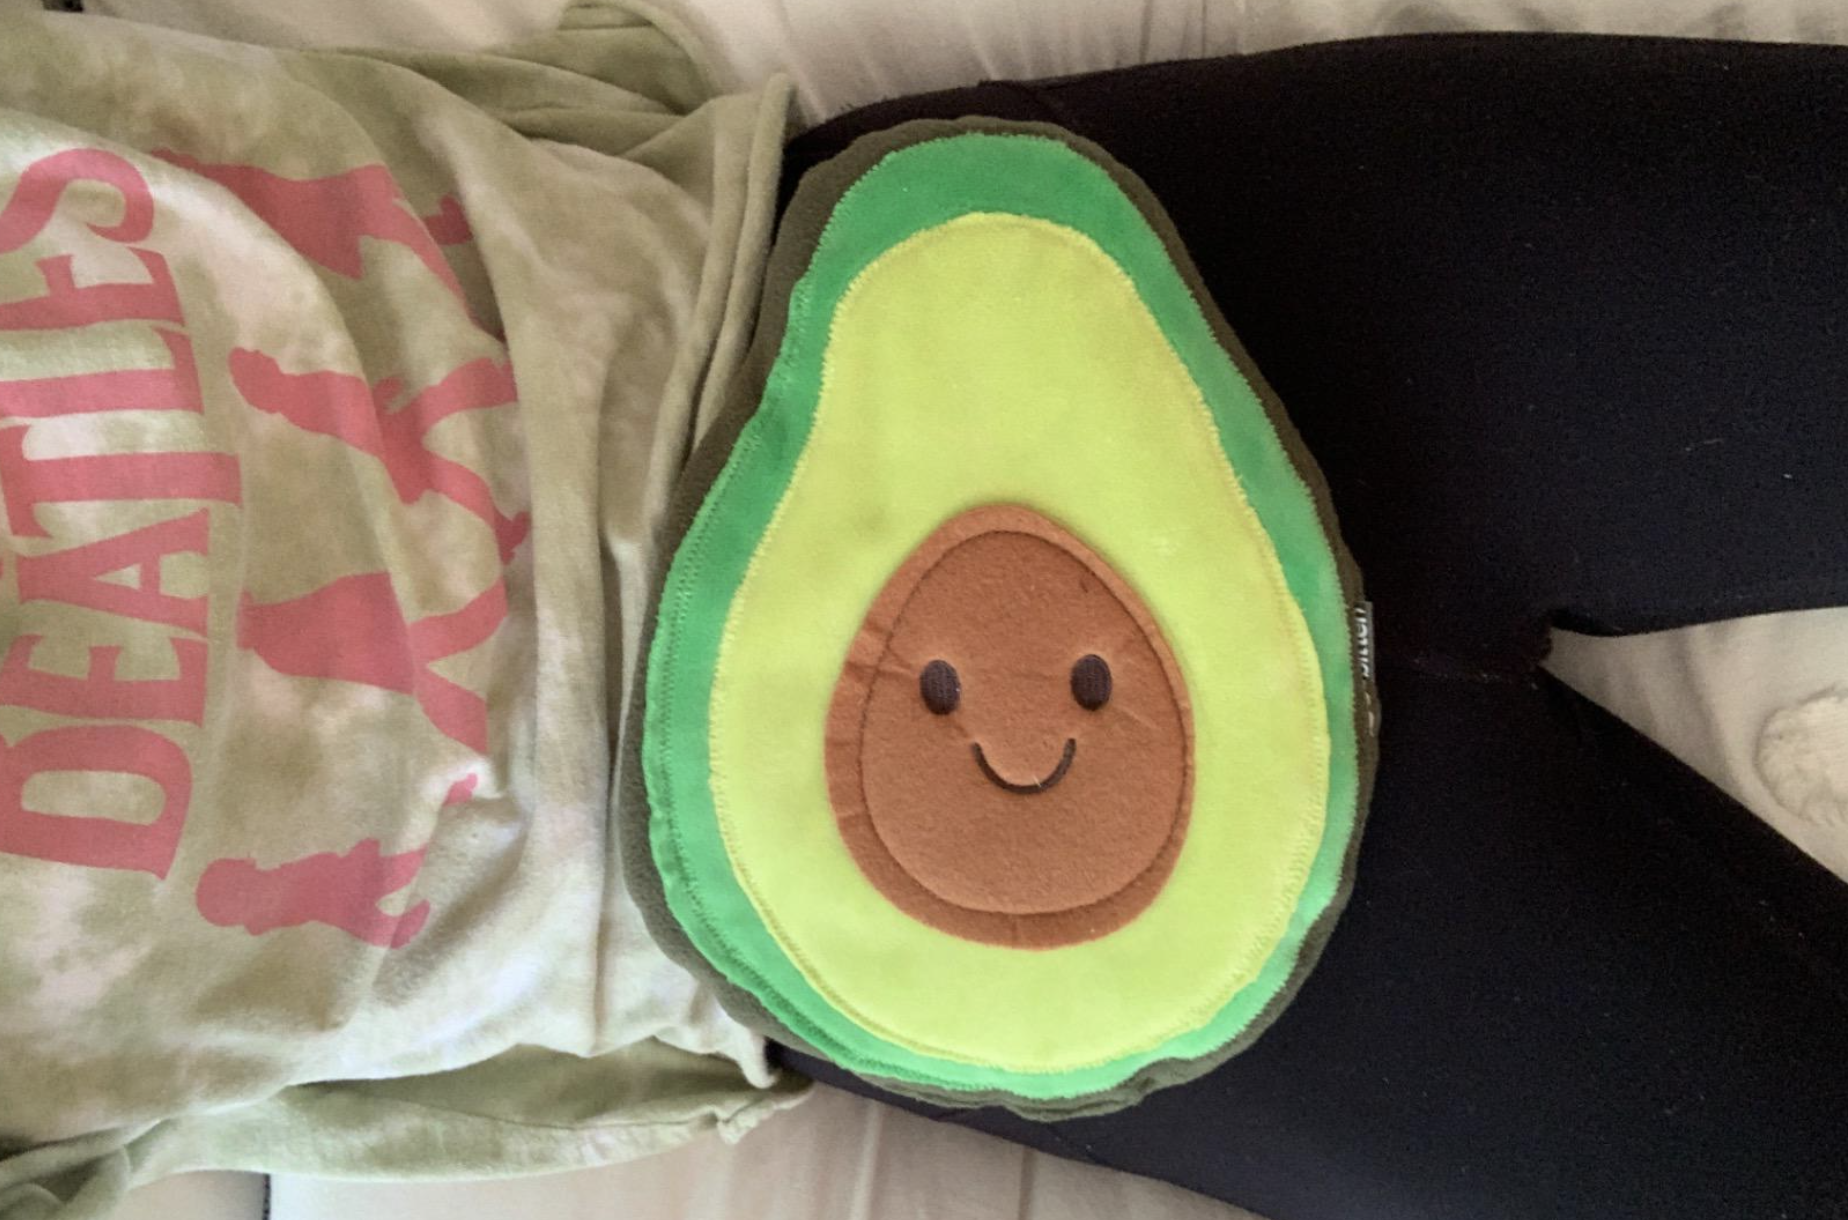 reviewer with the avocado heating pad on their lap